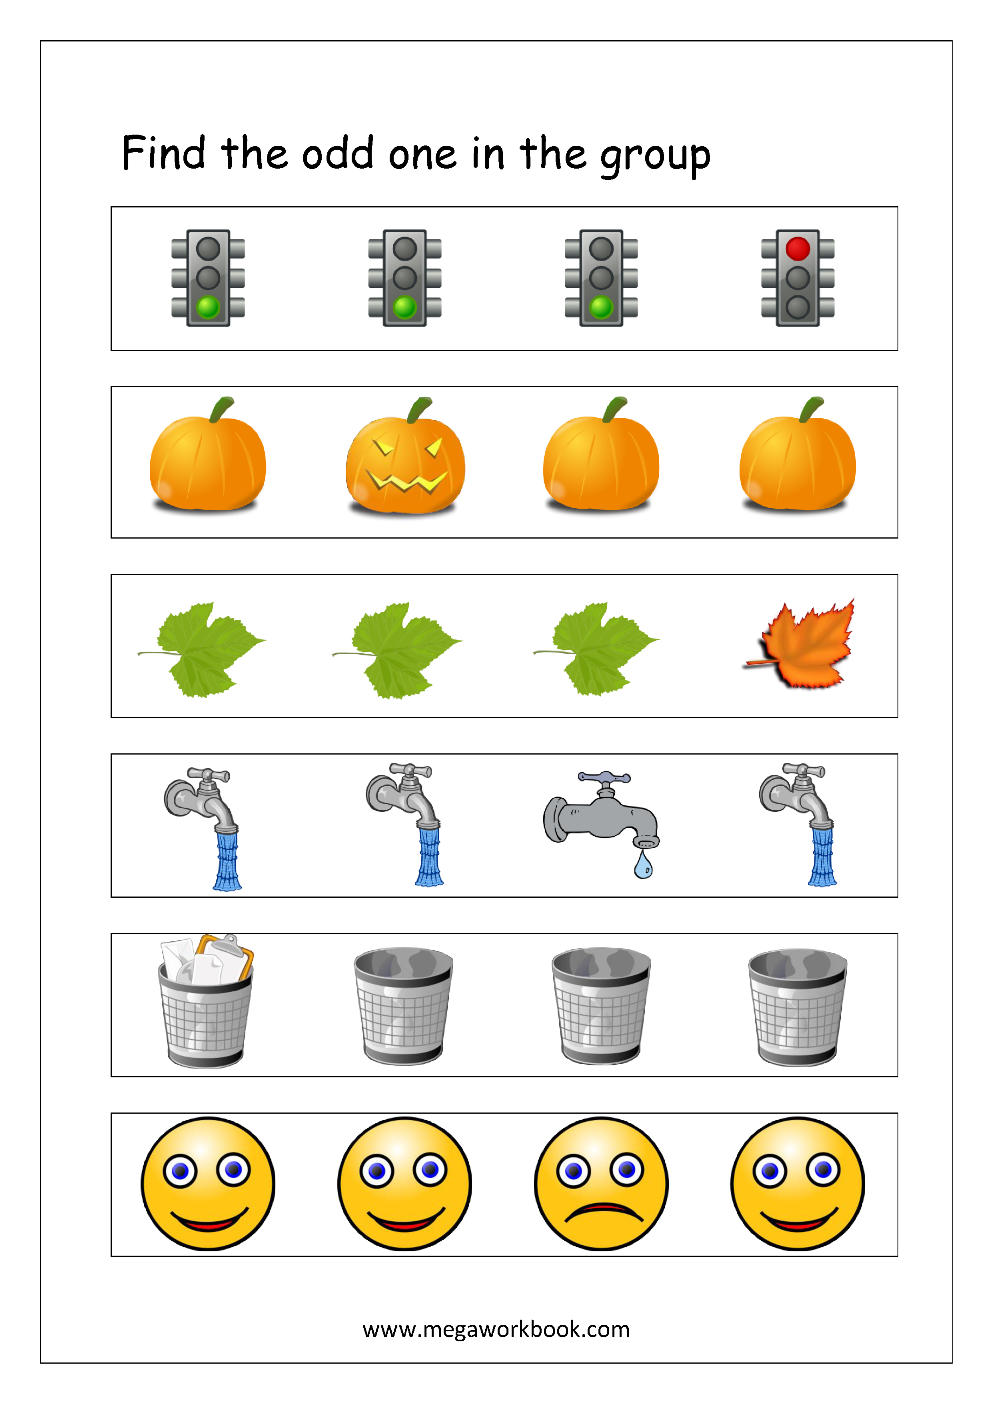 Free Printable Odd One Out Worksheets   Logical Thinking ...